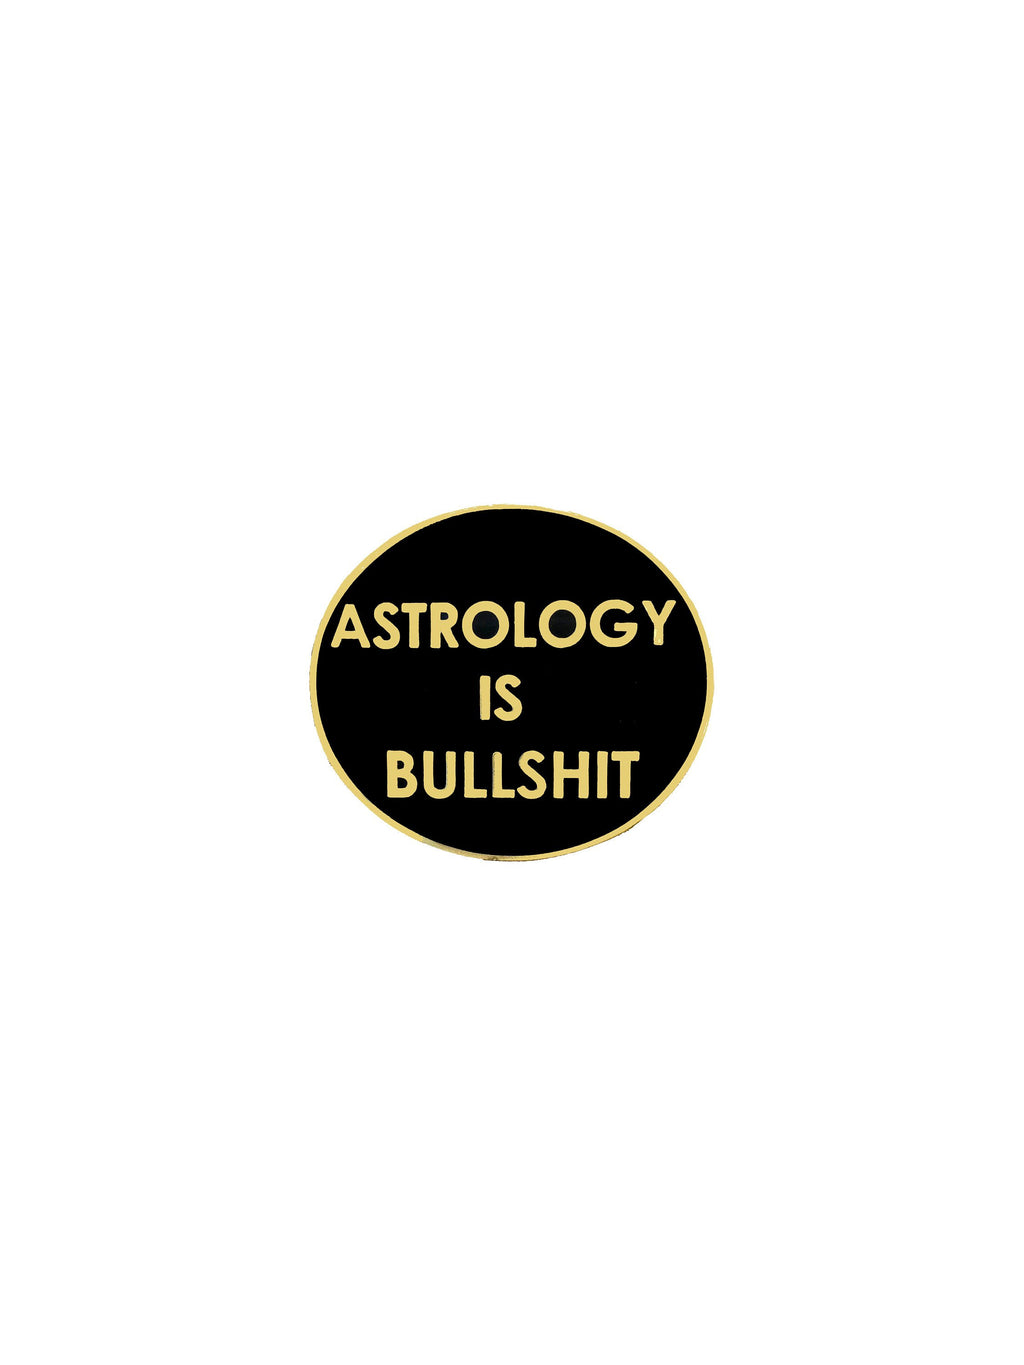 Round pin says Astrology is bullshit